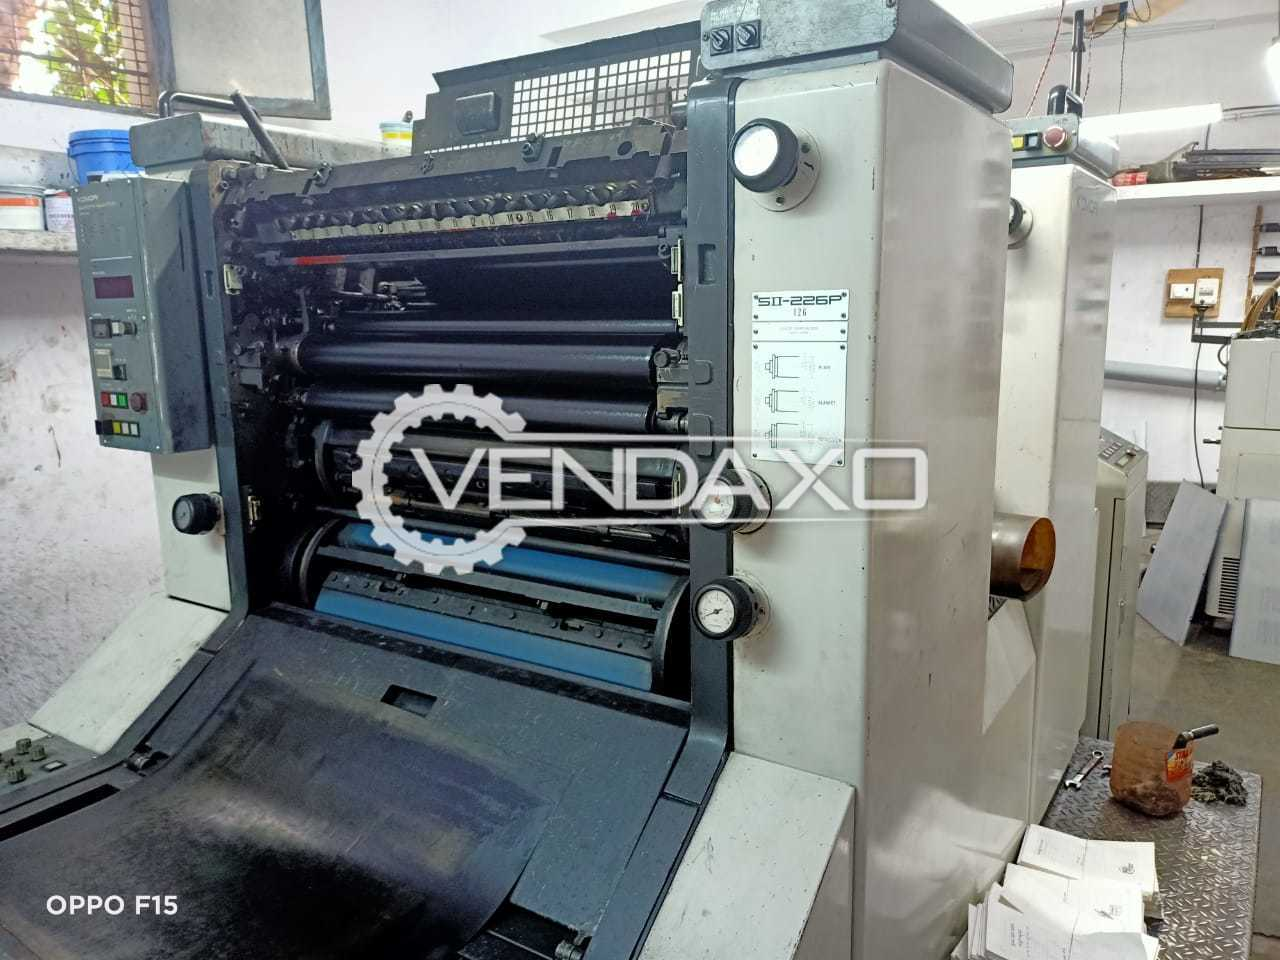 Komori SII 226P Offset Printing Machine - 19 x 26 Inch, 2 Color